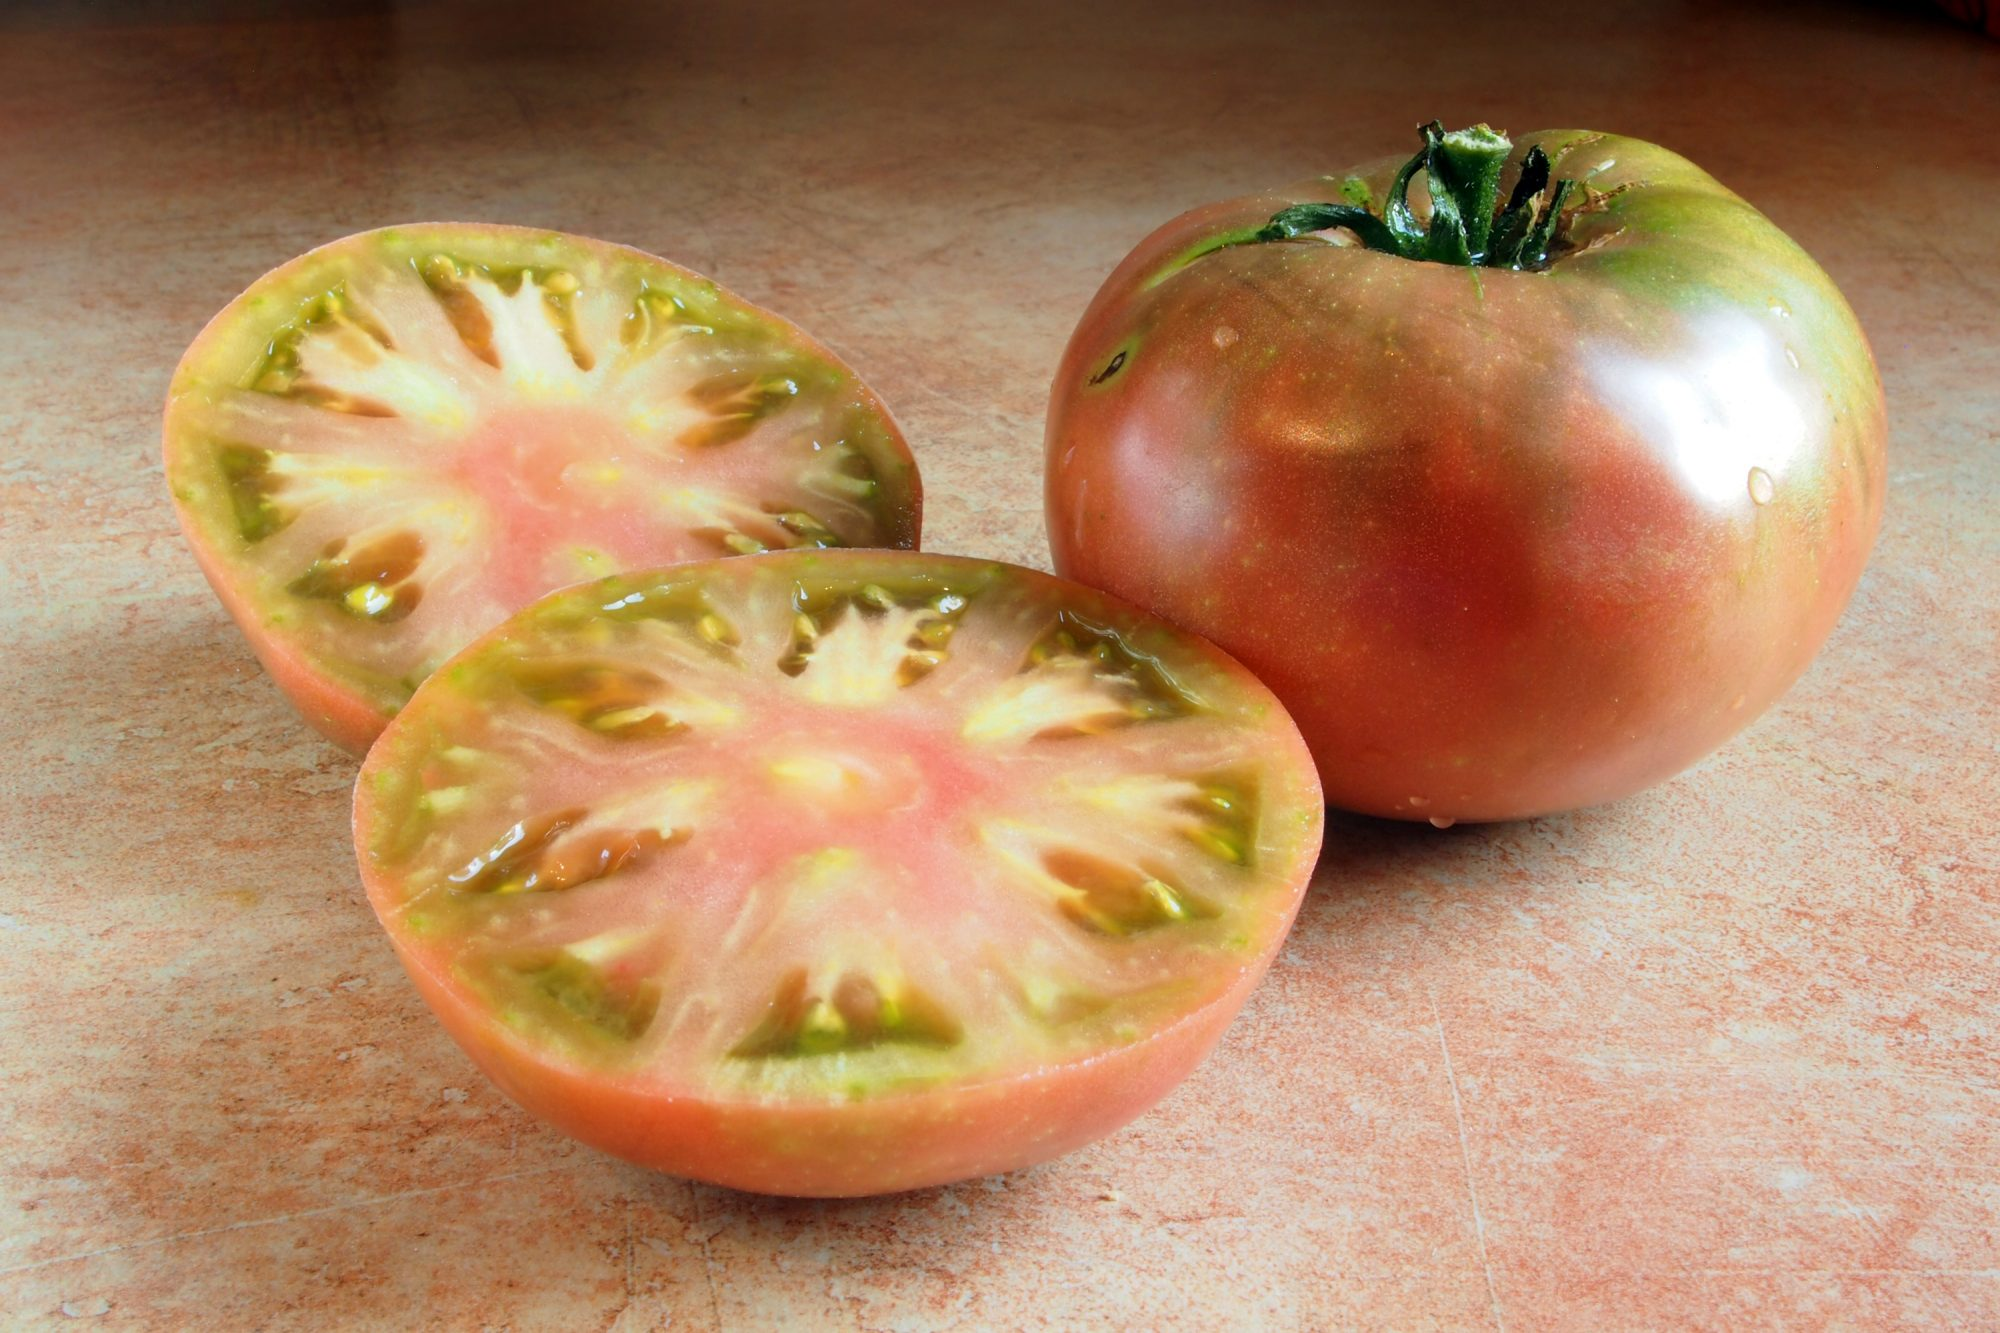 Cherokee Purple Tomato Getty 1/23/20